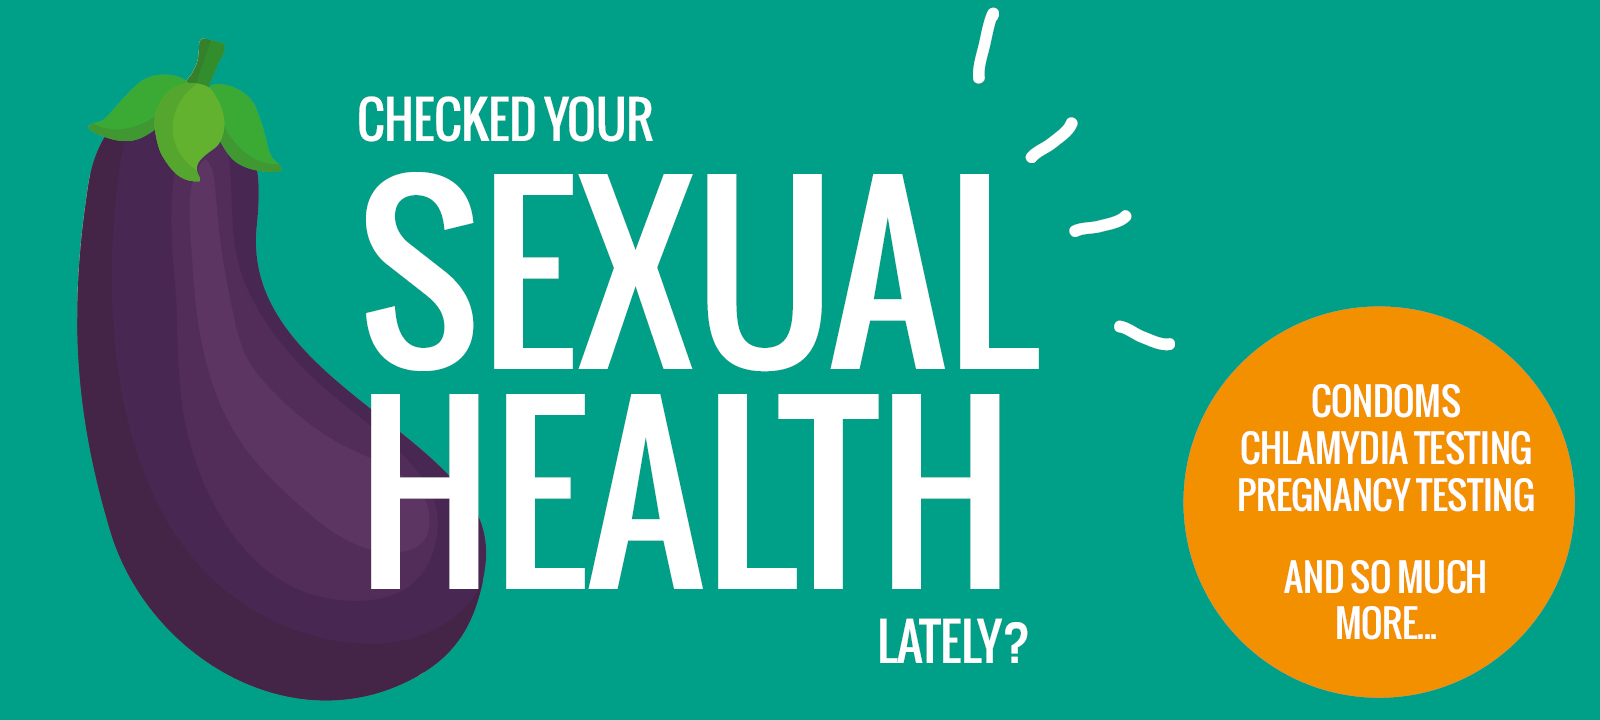 Checked your sexual health lately?